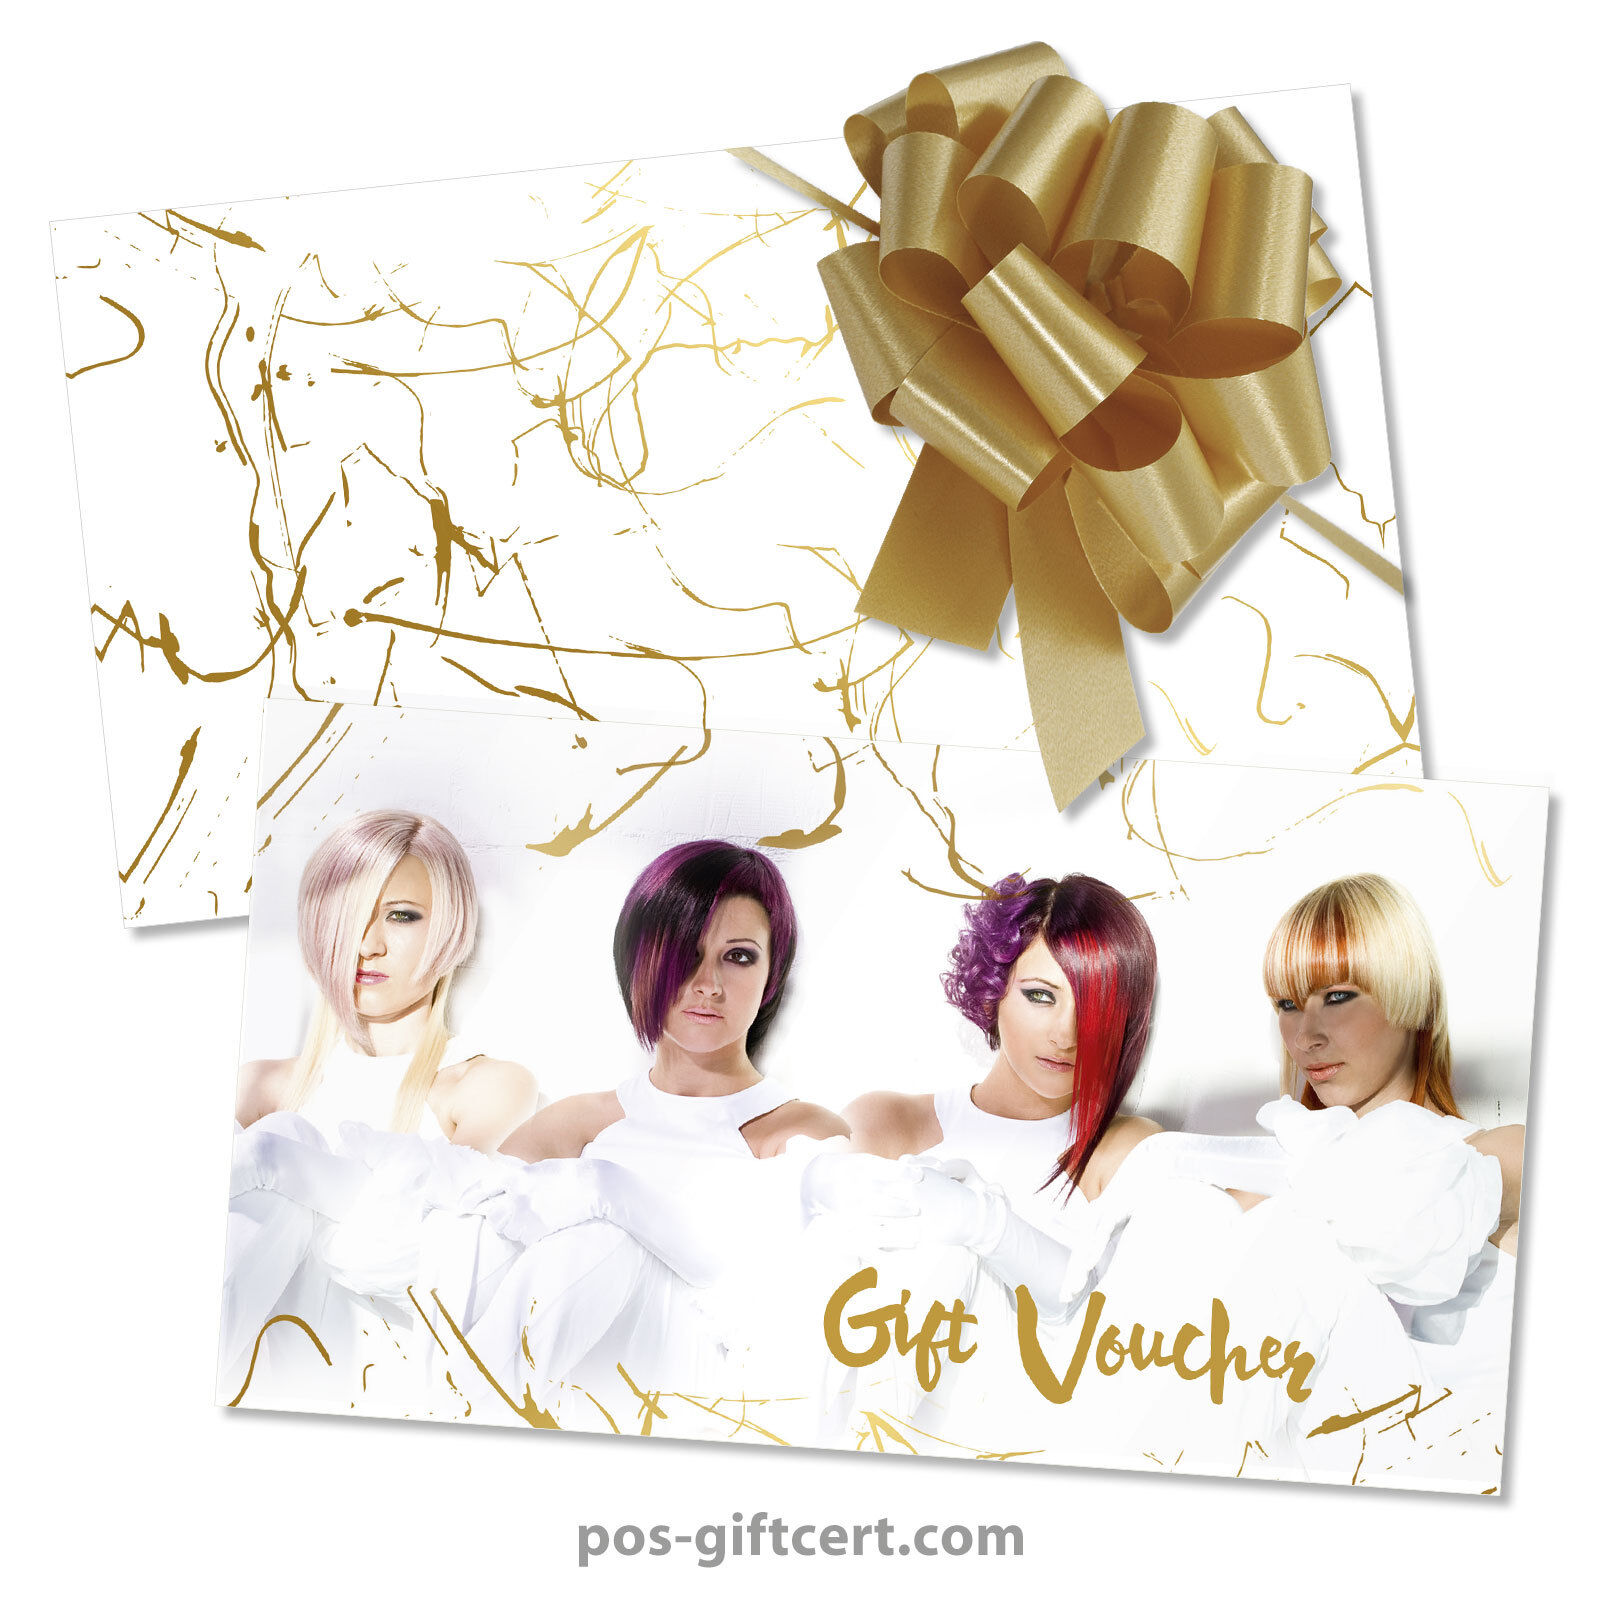 Poison vouchers + enveloppes + Pull Bows For Hair Salons, Hairdressers k299gb